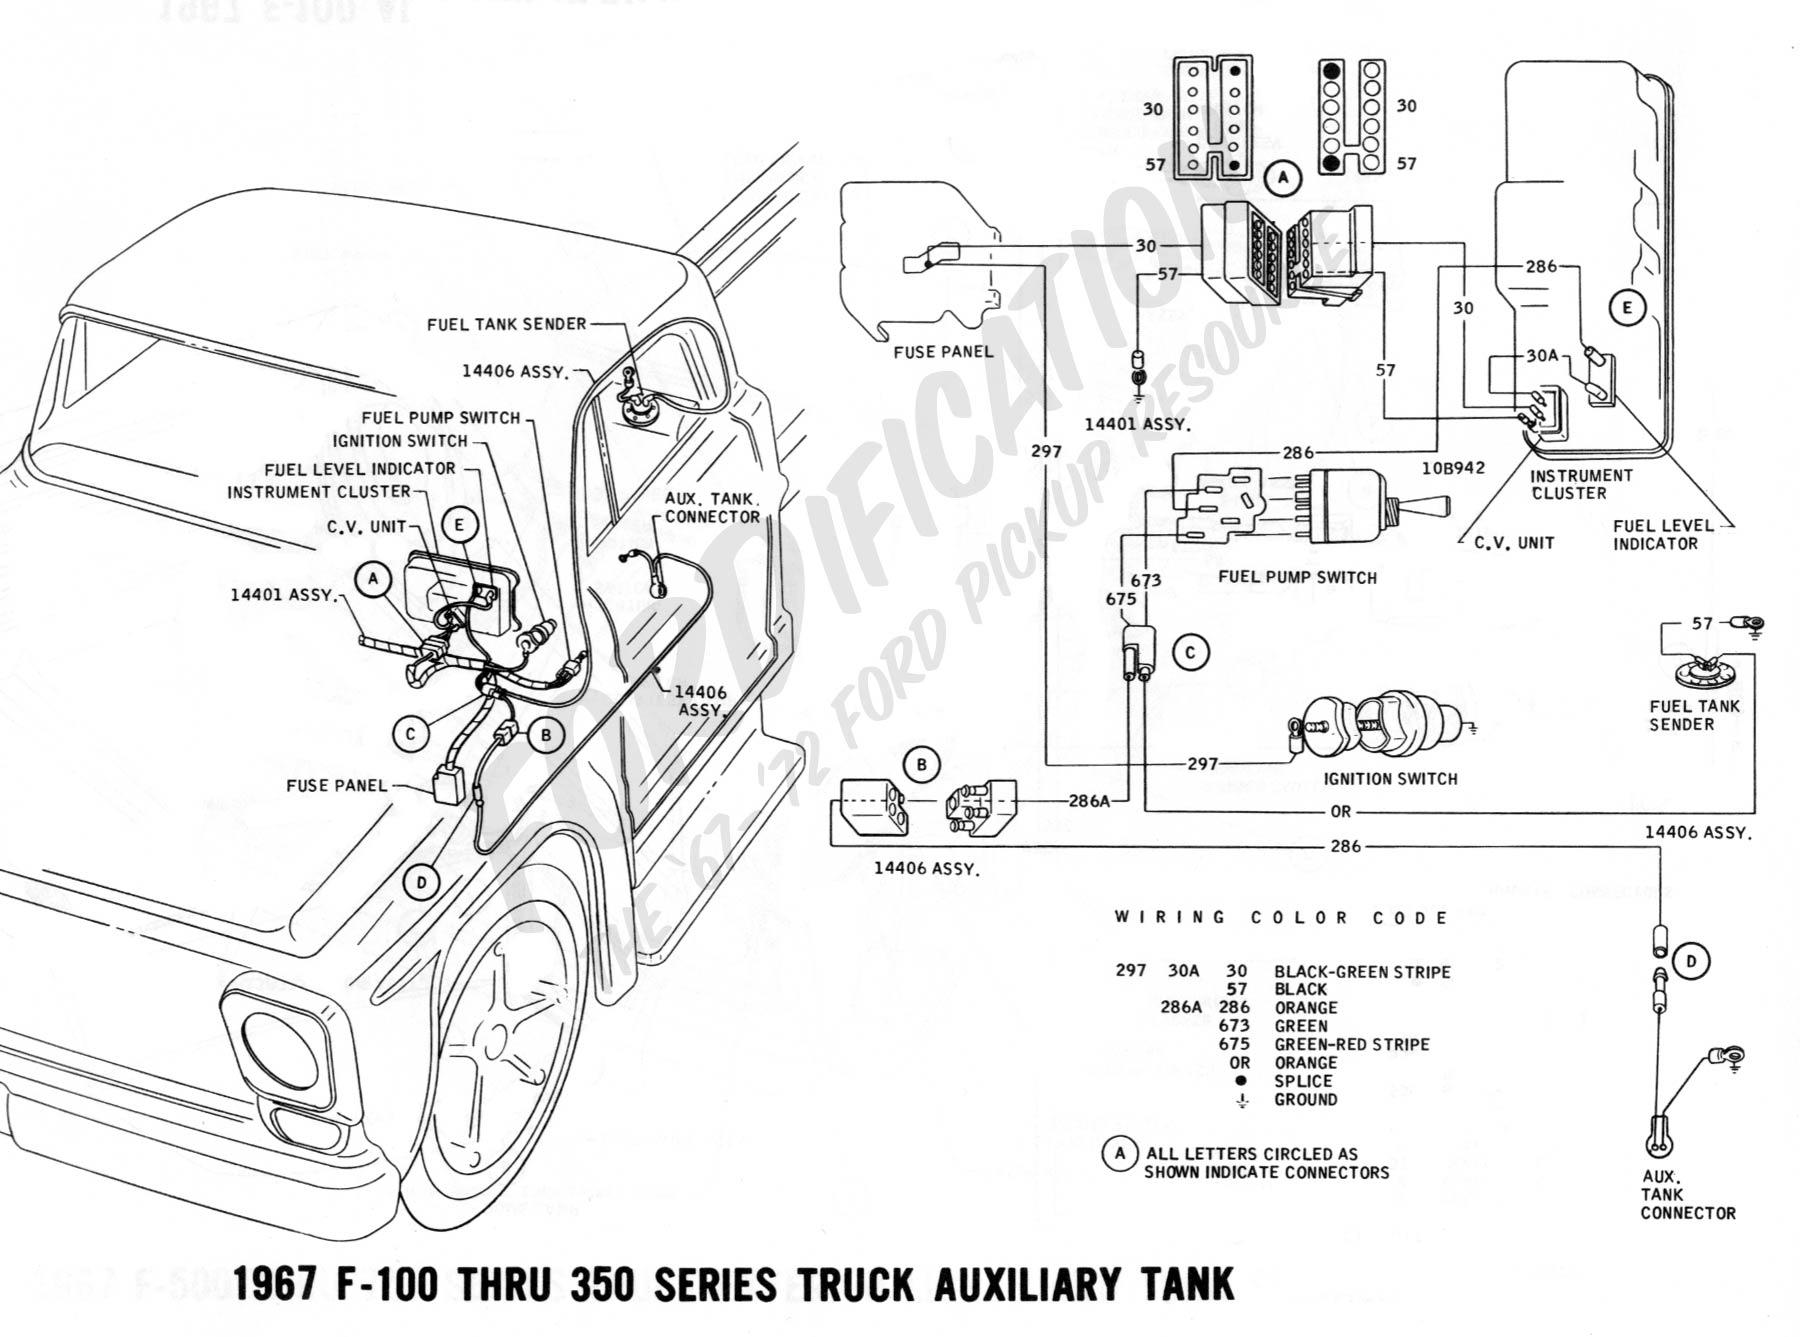 wiring 1967auxtank ford truck technical drawings and schematics section h wiring  at gsmx.co